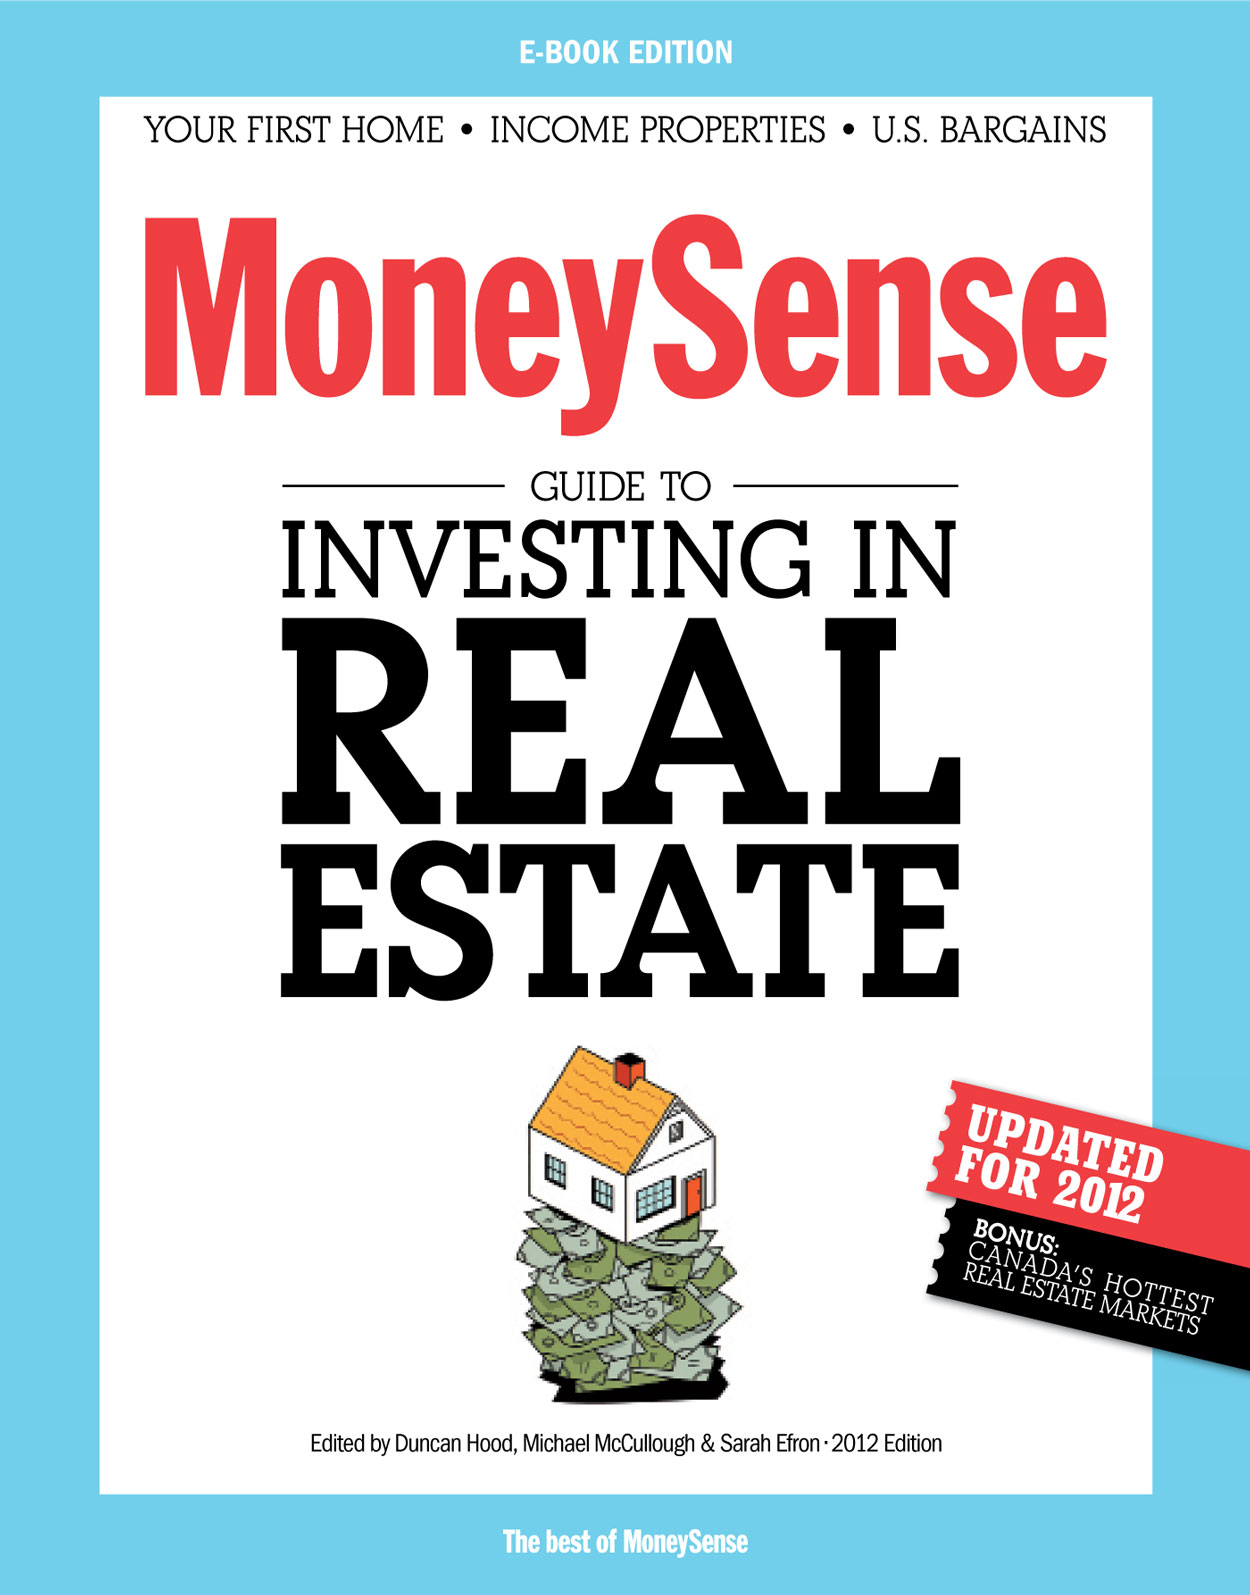 The MoneySense Guide to Investing in Real Estate